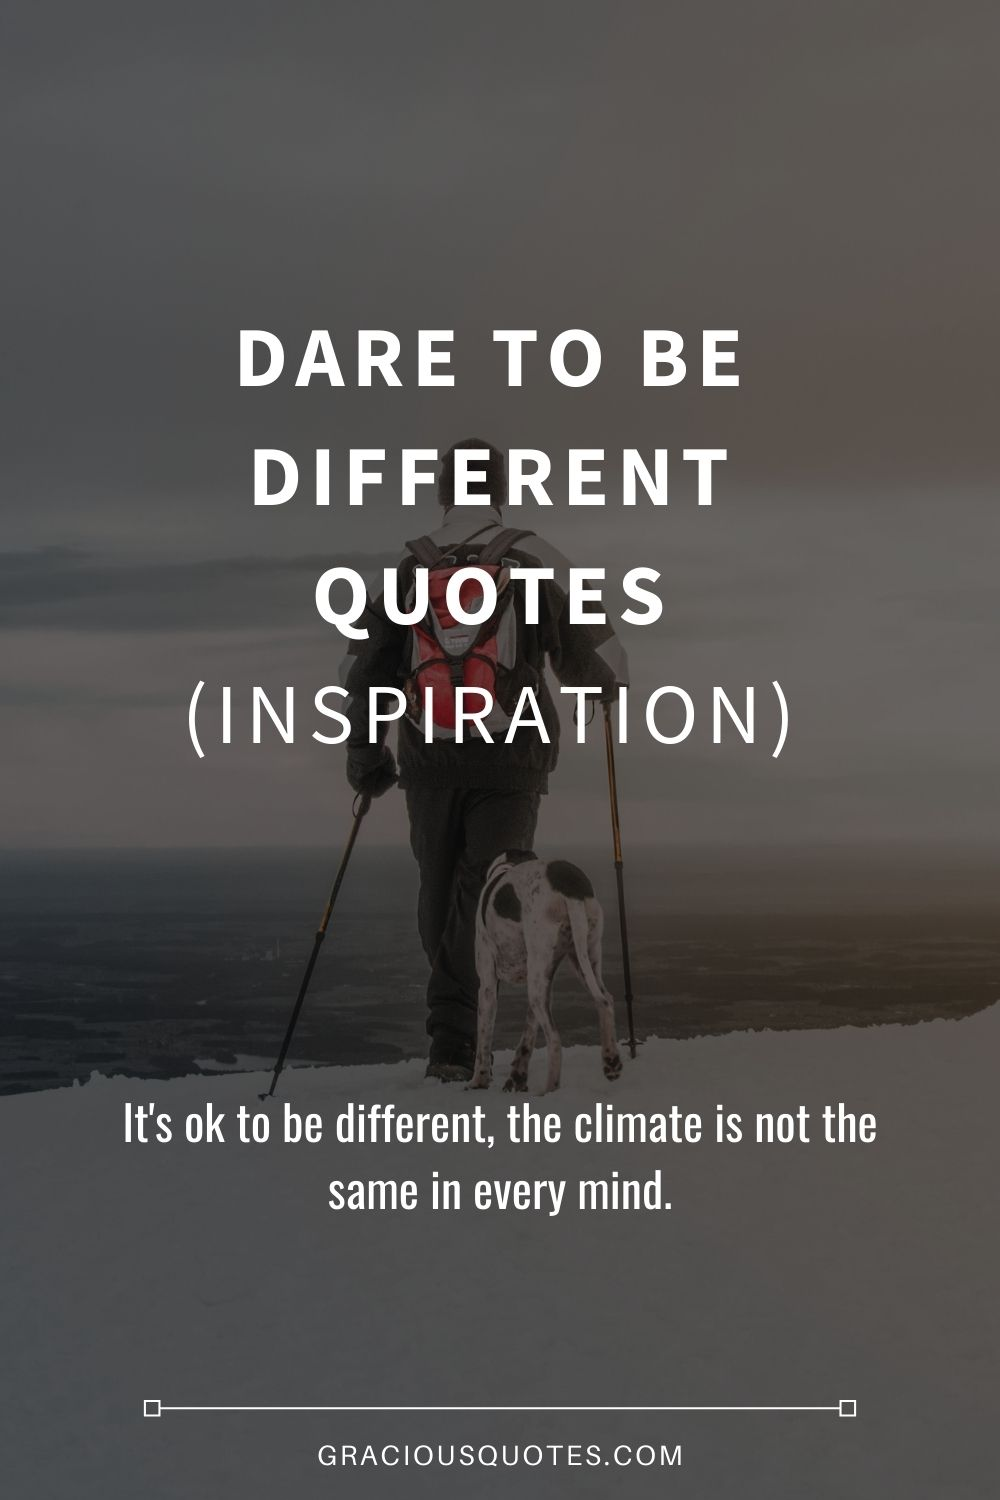 Dare To Be Different Quotes : different, quotes, Different, Quotes, (INSPIRATION)